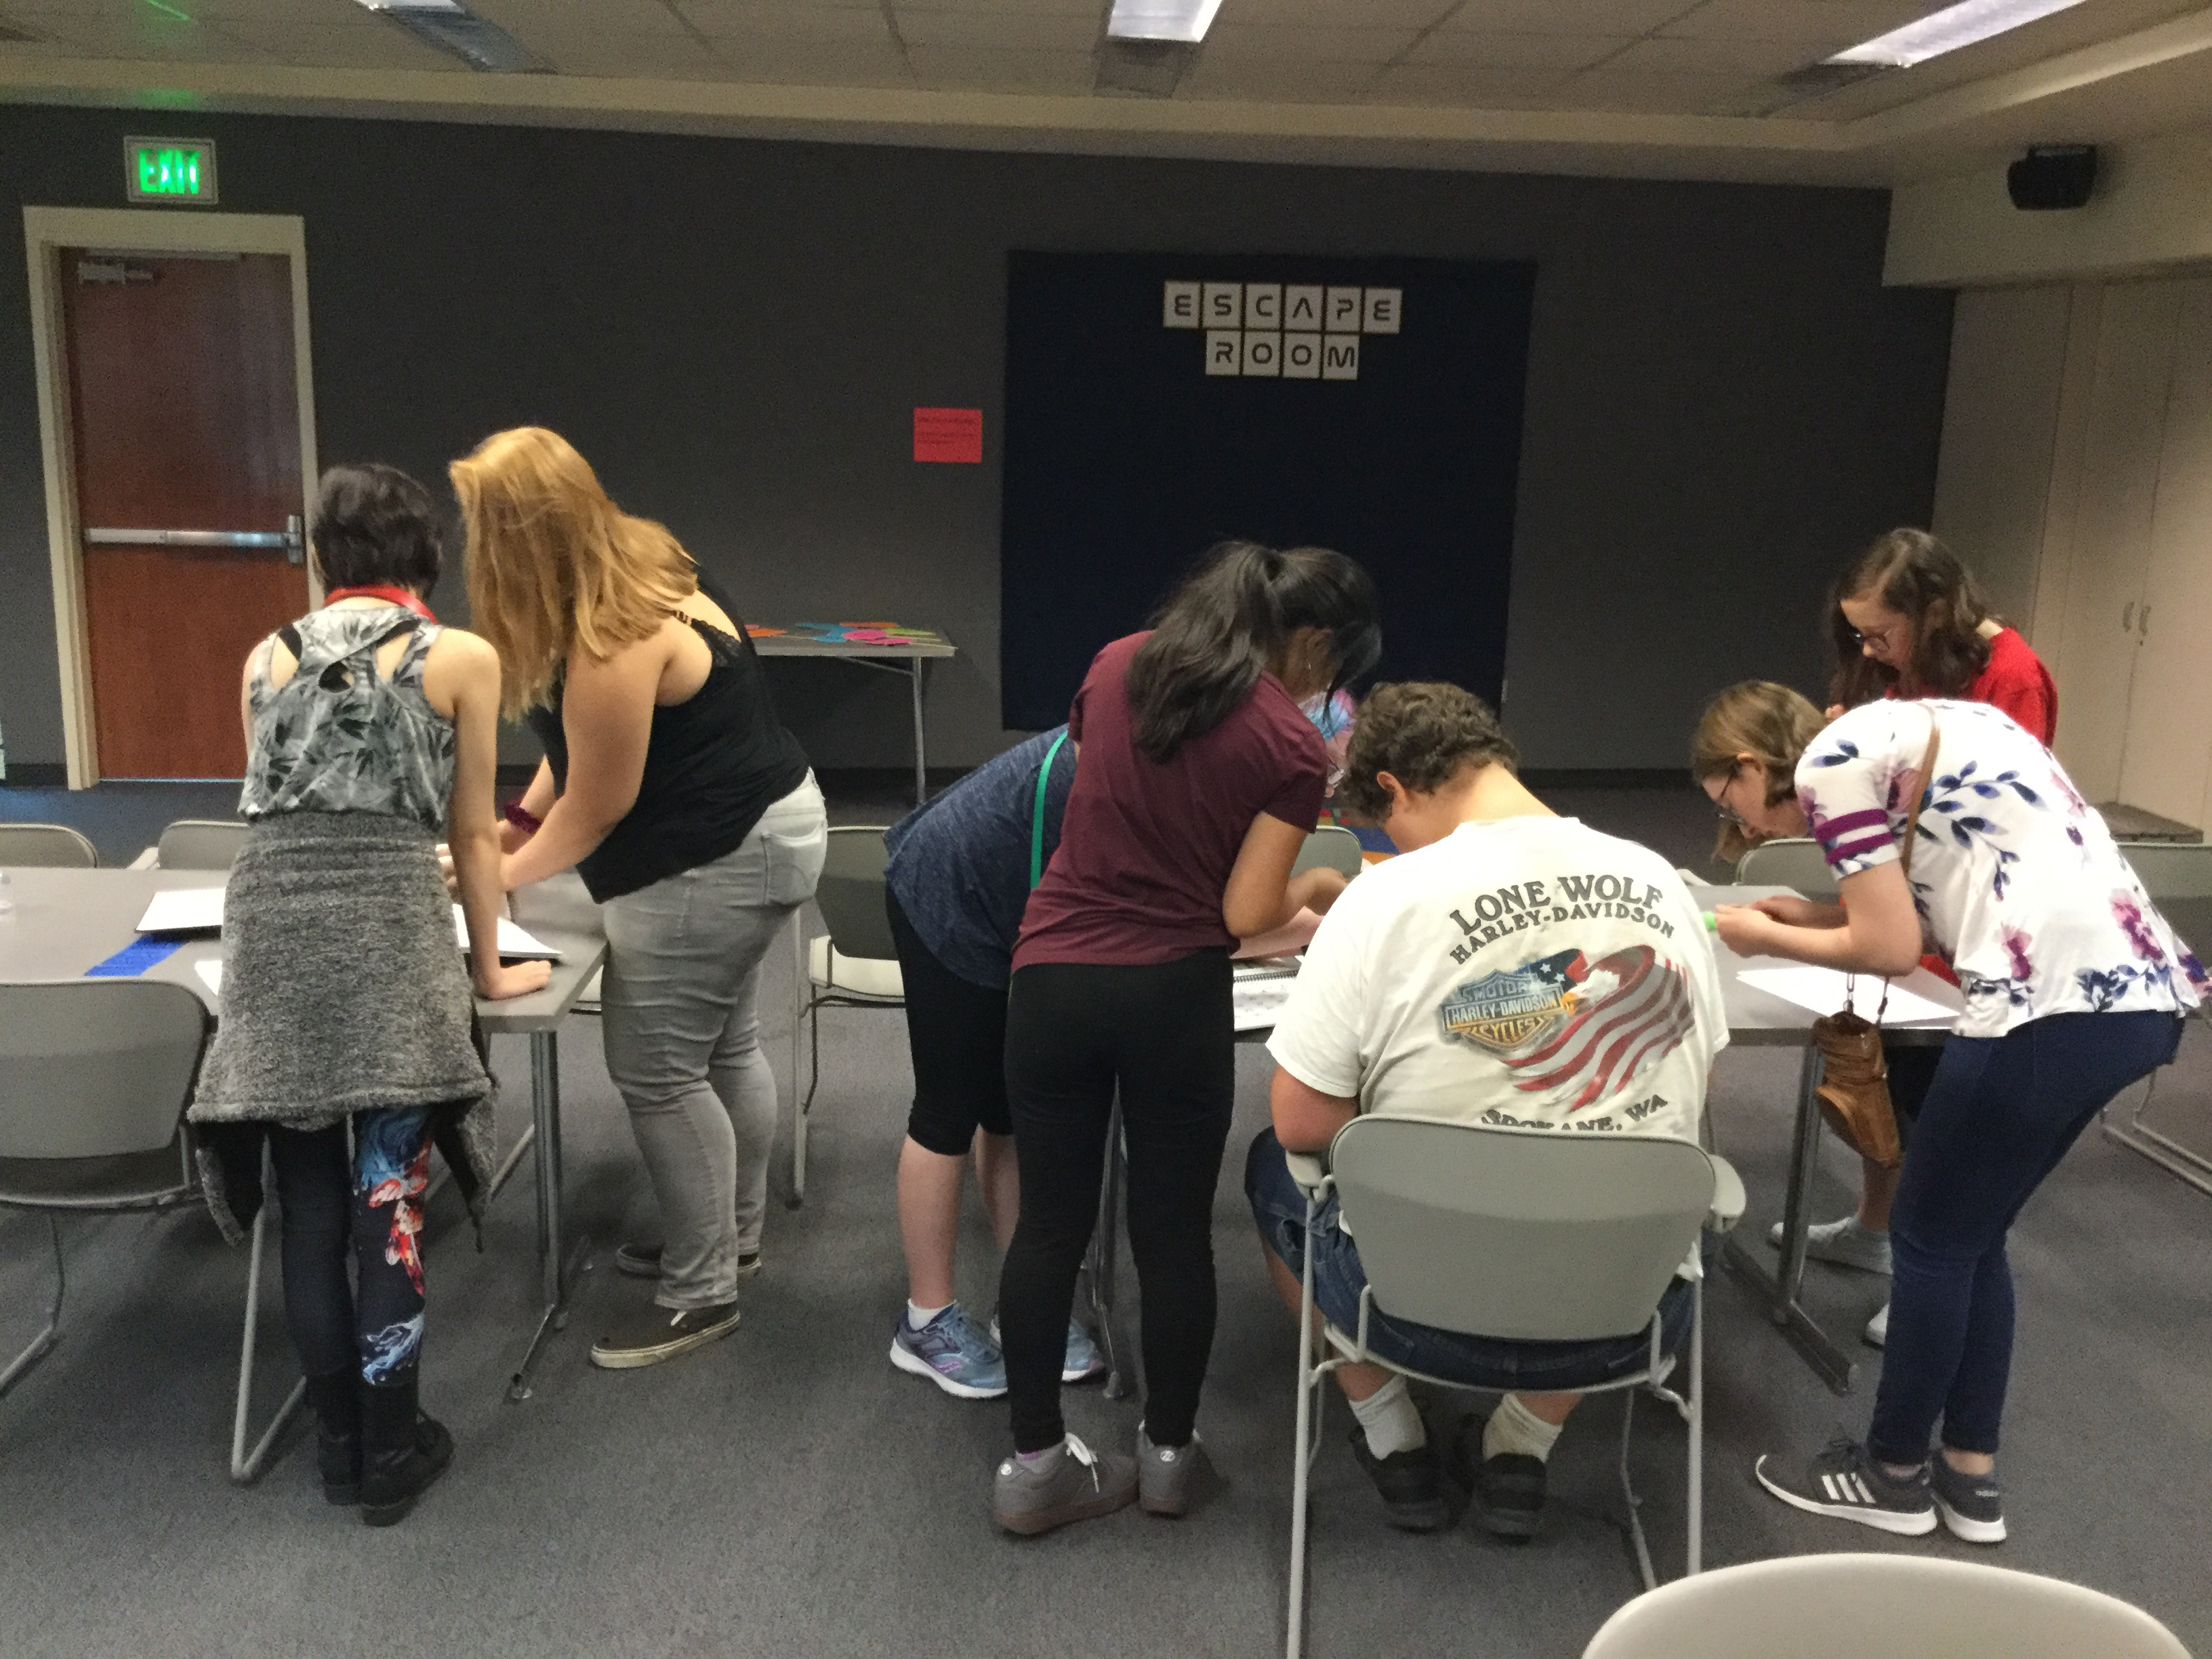 A group of teens work together to solve puzzles in the accessible escape room at the Spokane Public Library.